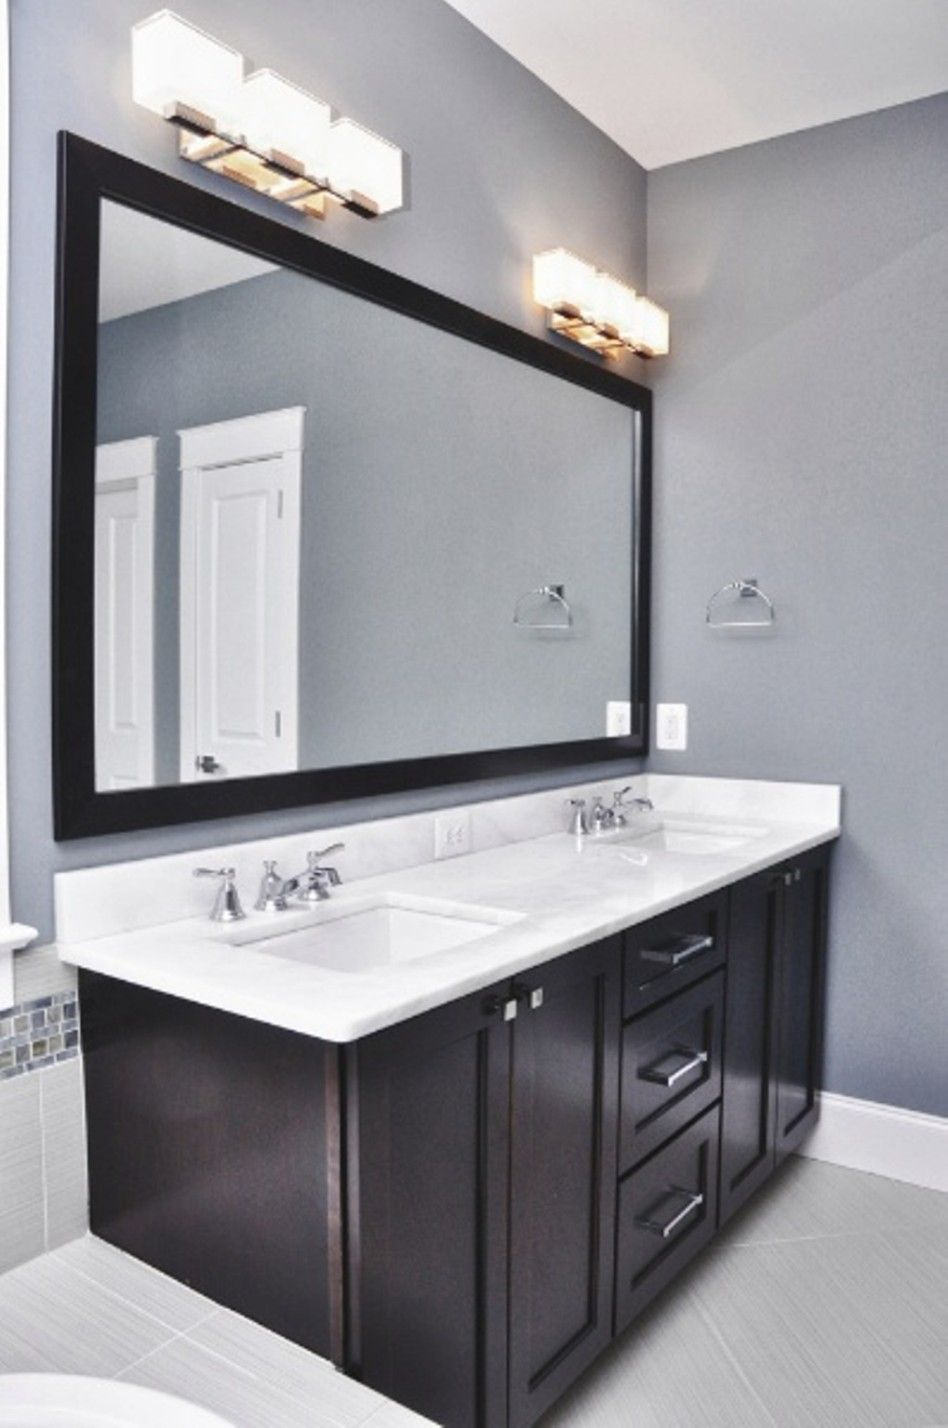 Bathroom Charming Lighting Fixtures Over Mirror Elagant Grey Wall And Dark Wood Cabinet With Light White